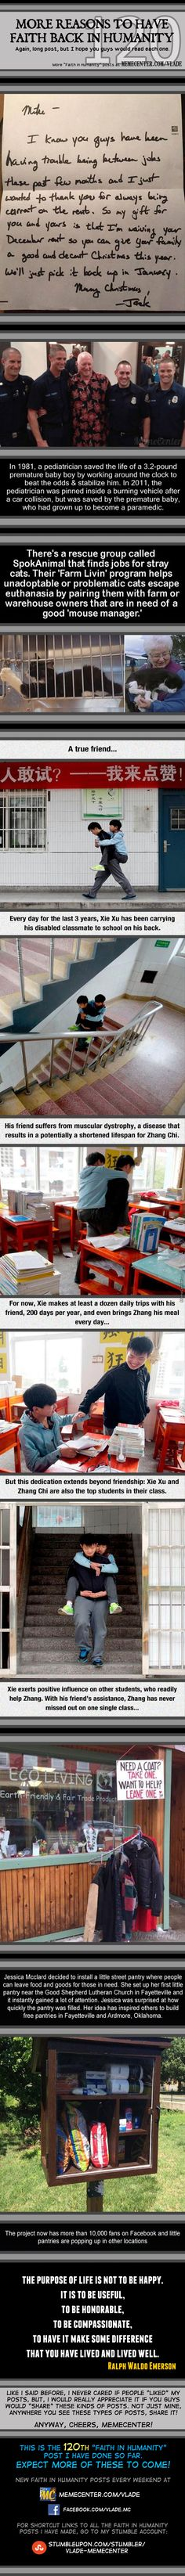 Restore My Faith in Humanity #120